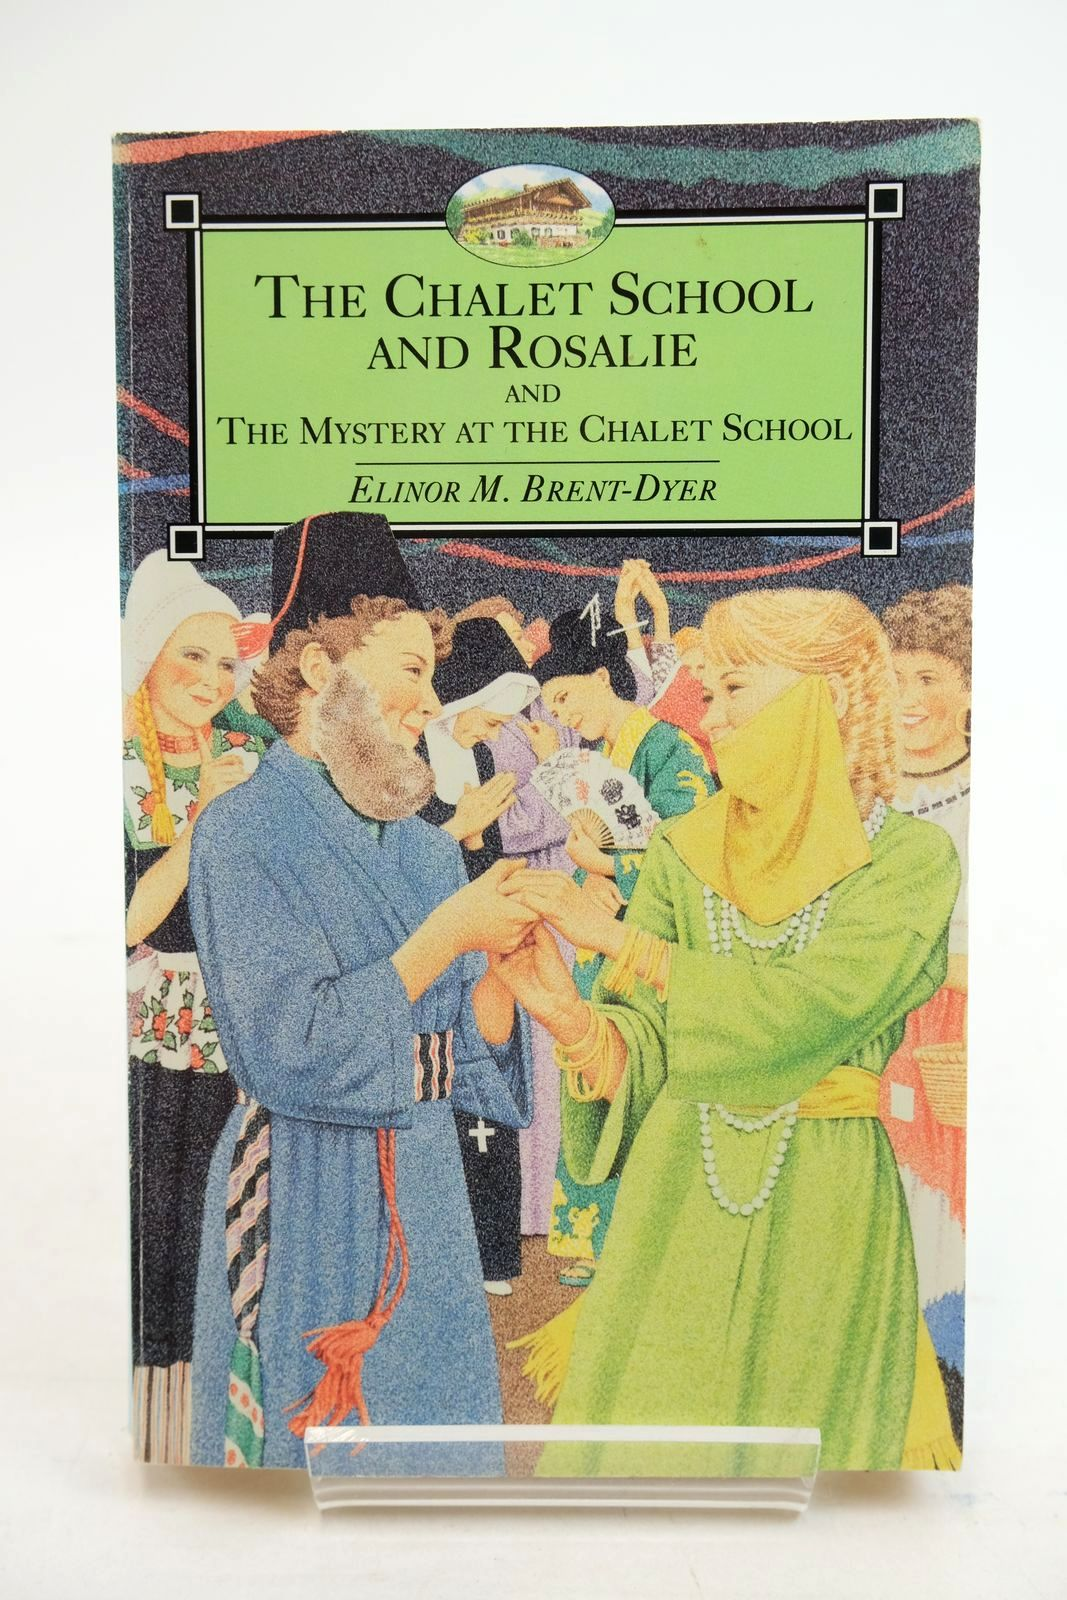 Photo of THE CHALET SCHOOL AND ROSALIE AND THE MYSTERY AT THE CHALET SCHOOL written by Brent-Dyer, Elinor M. published by Armada (STOCK CODE: 1320987)  for sale by Stella & Rose's Books